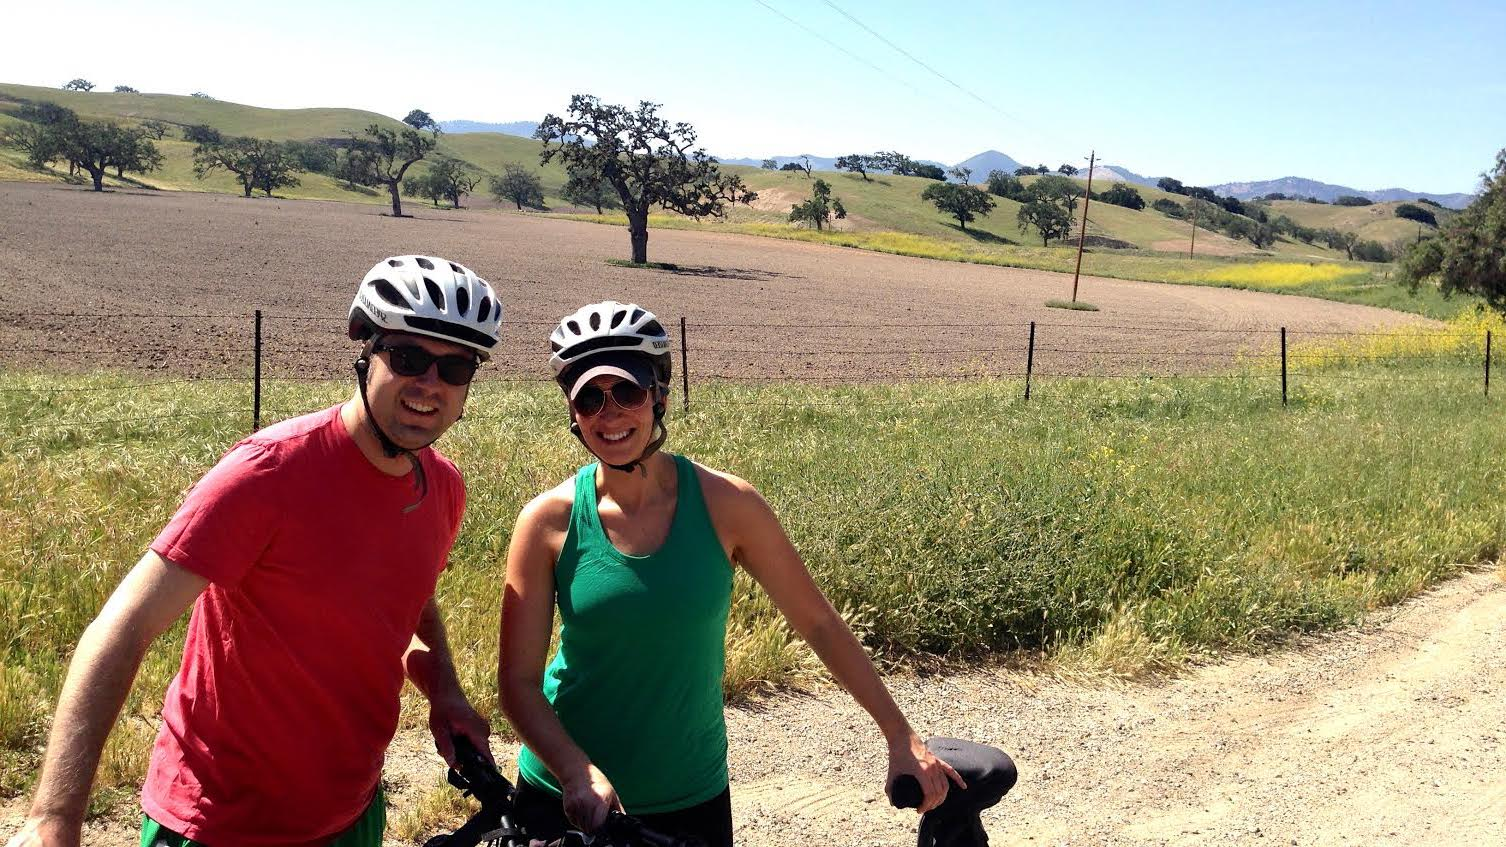 OTL host Mike Stephen practices bicycle safety with his wife Jenny on a bike tour of wine country outside of Santa Ynez, CA. [circa 2014]